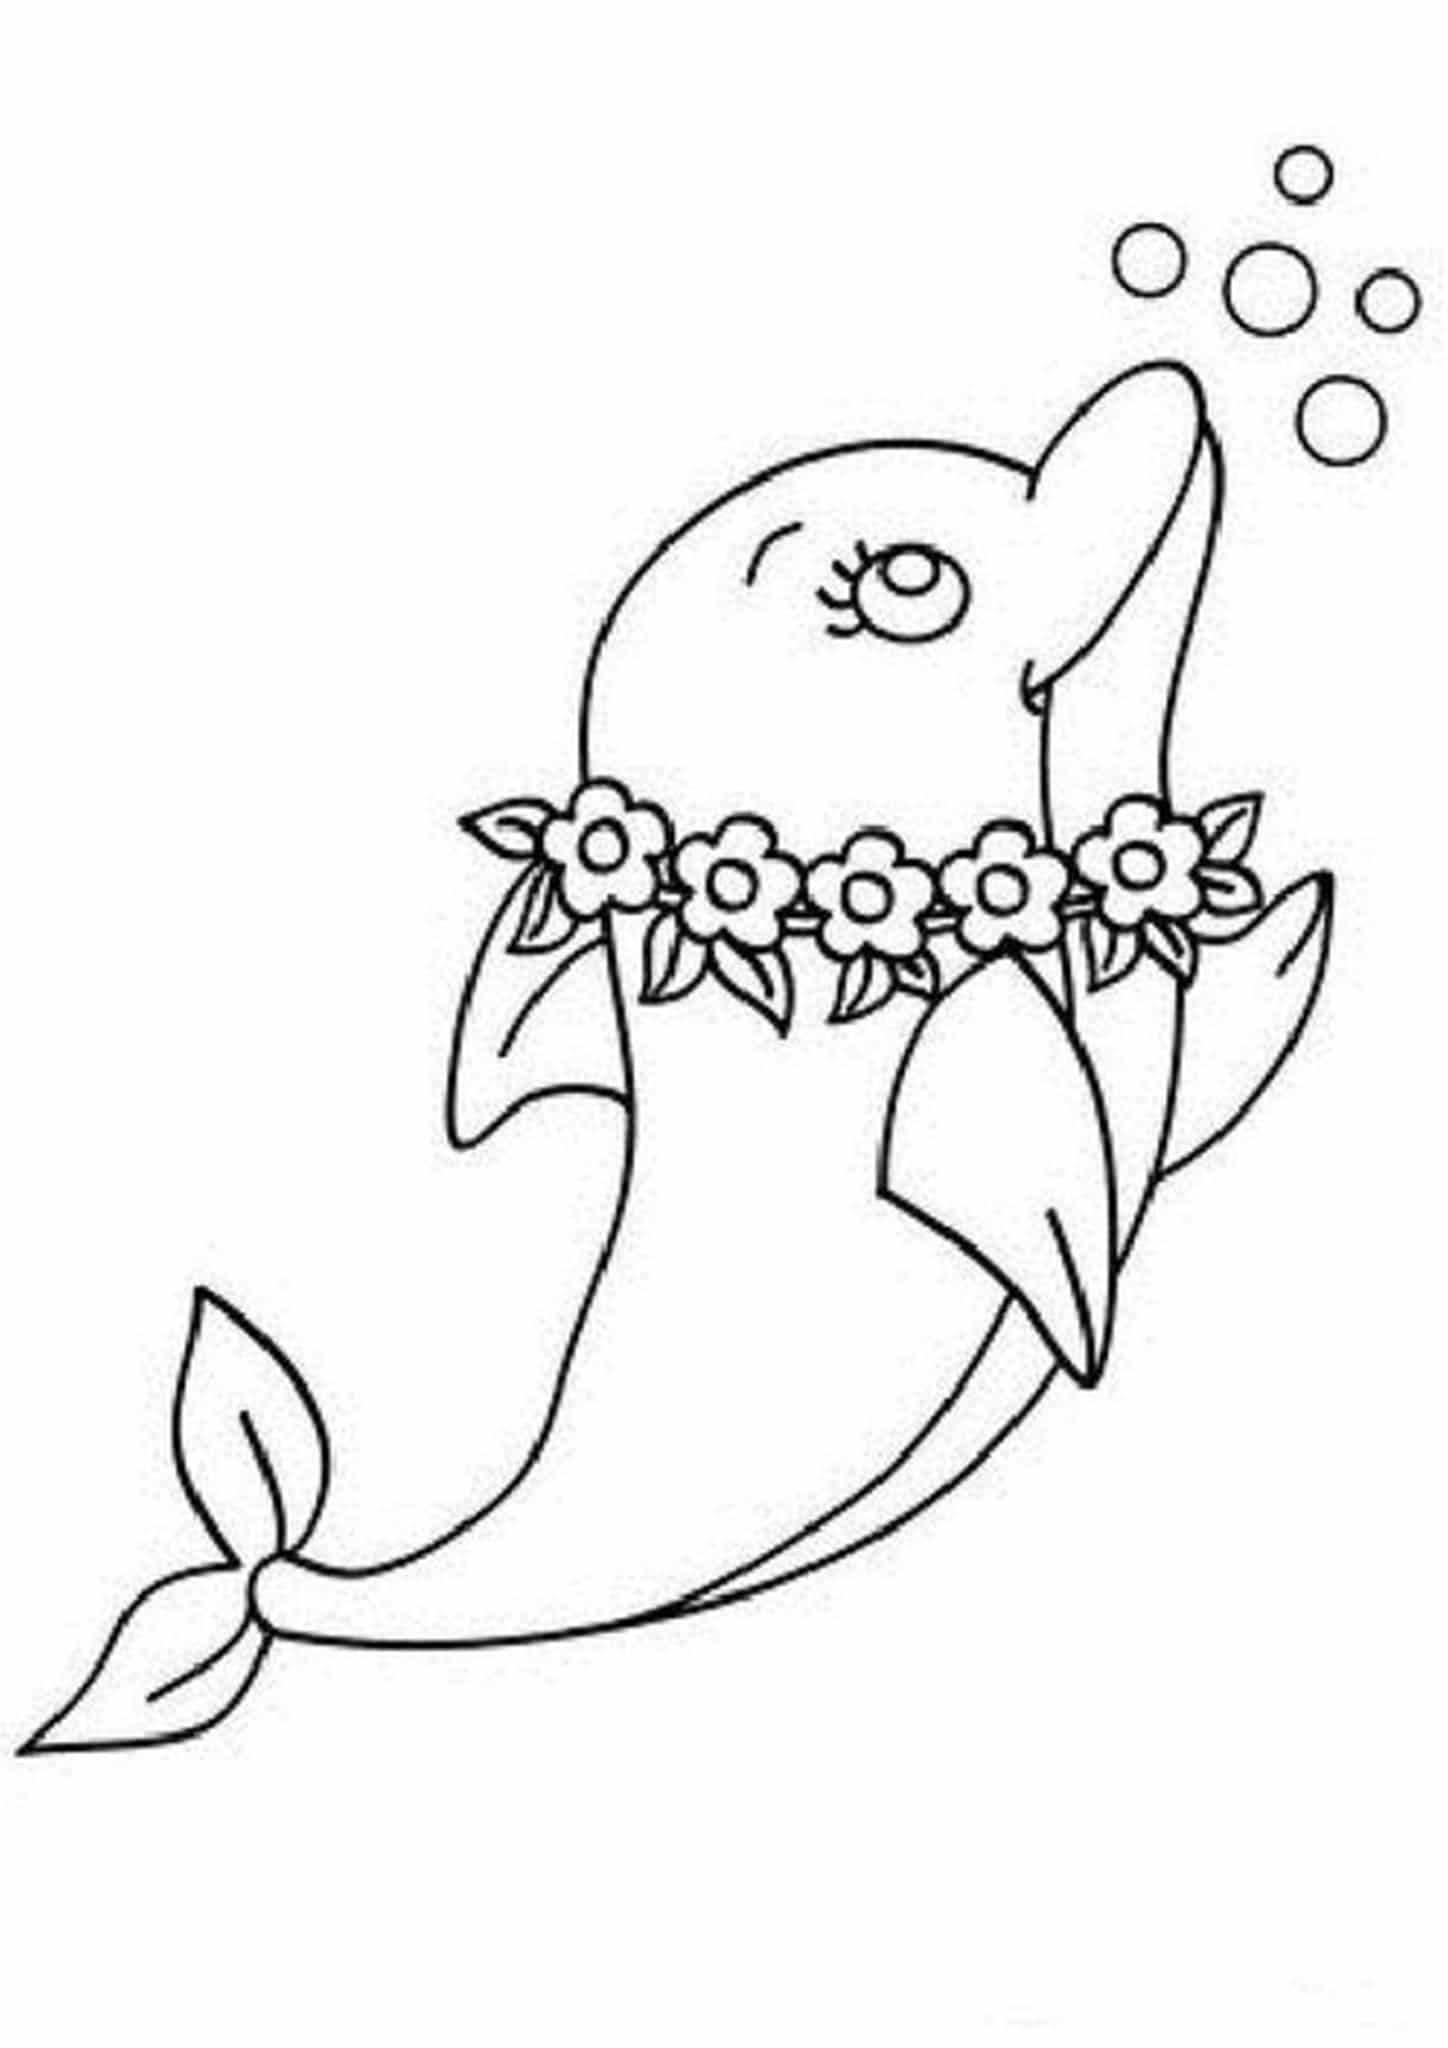 dolphins to color and print two dolphins coloring page to print or download for dolphins and to print color